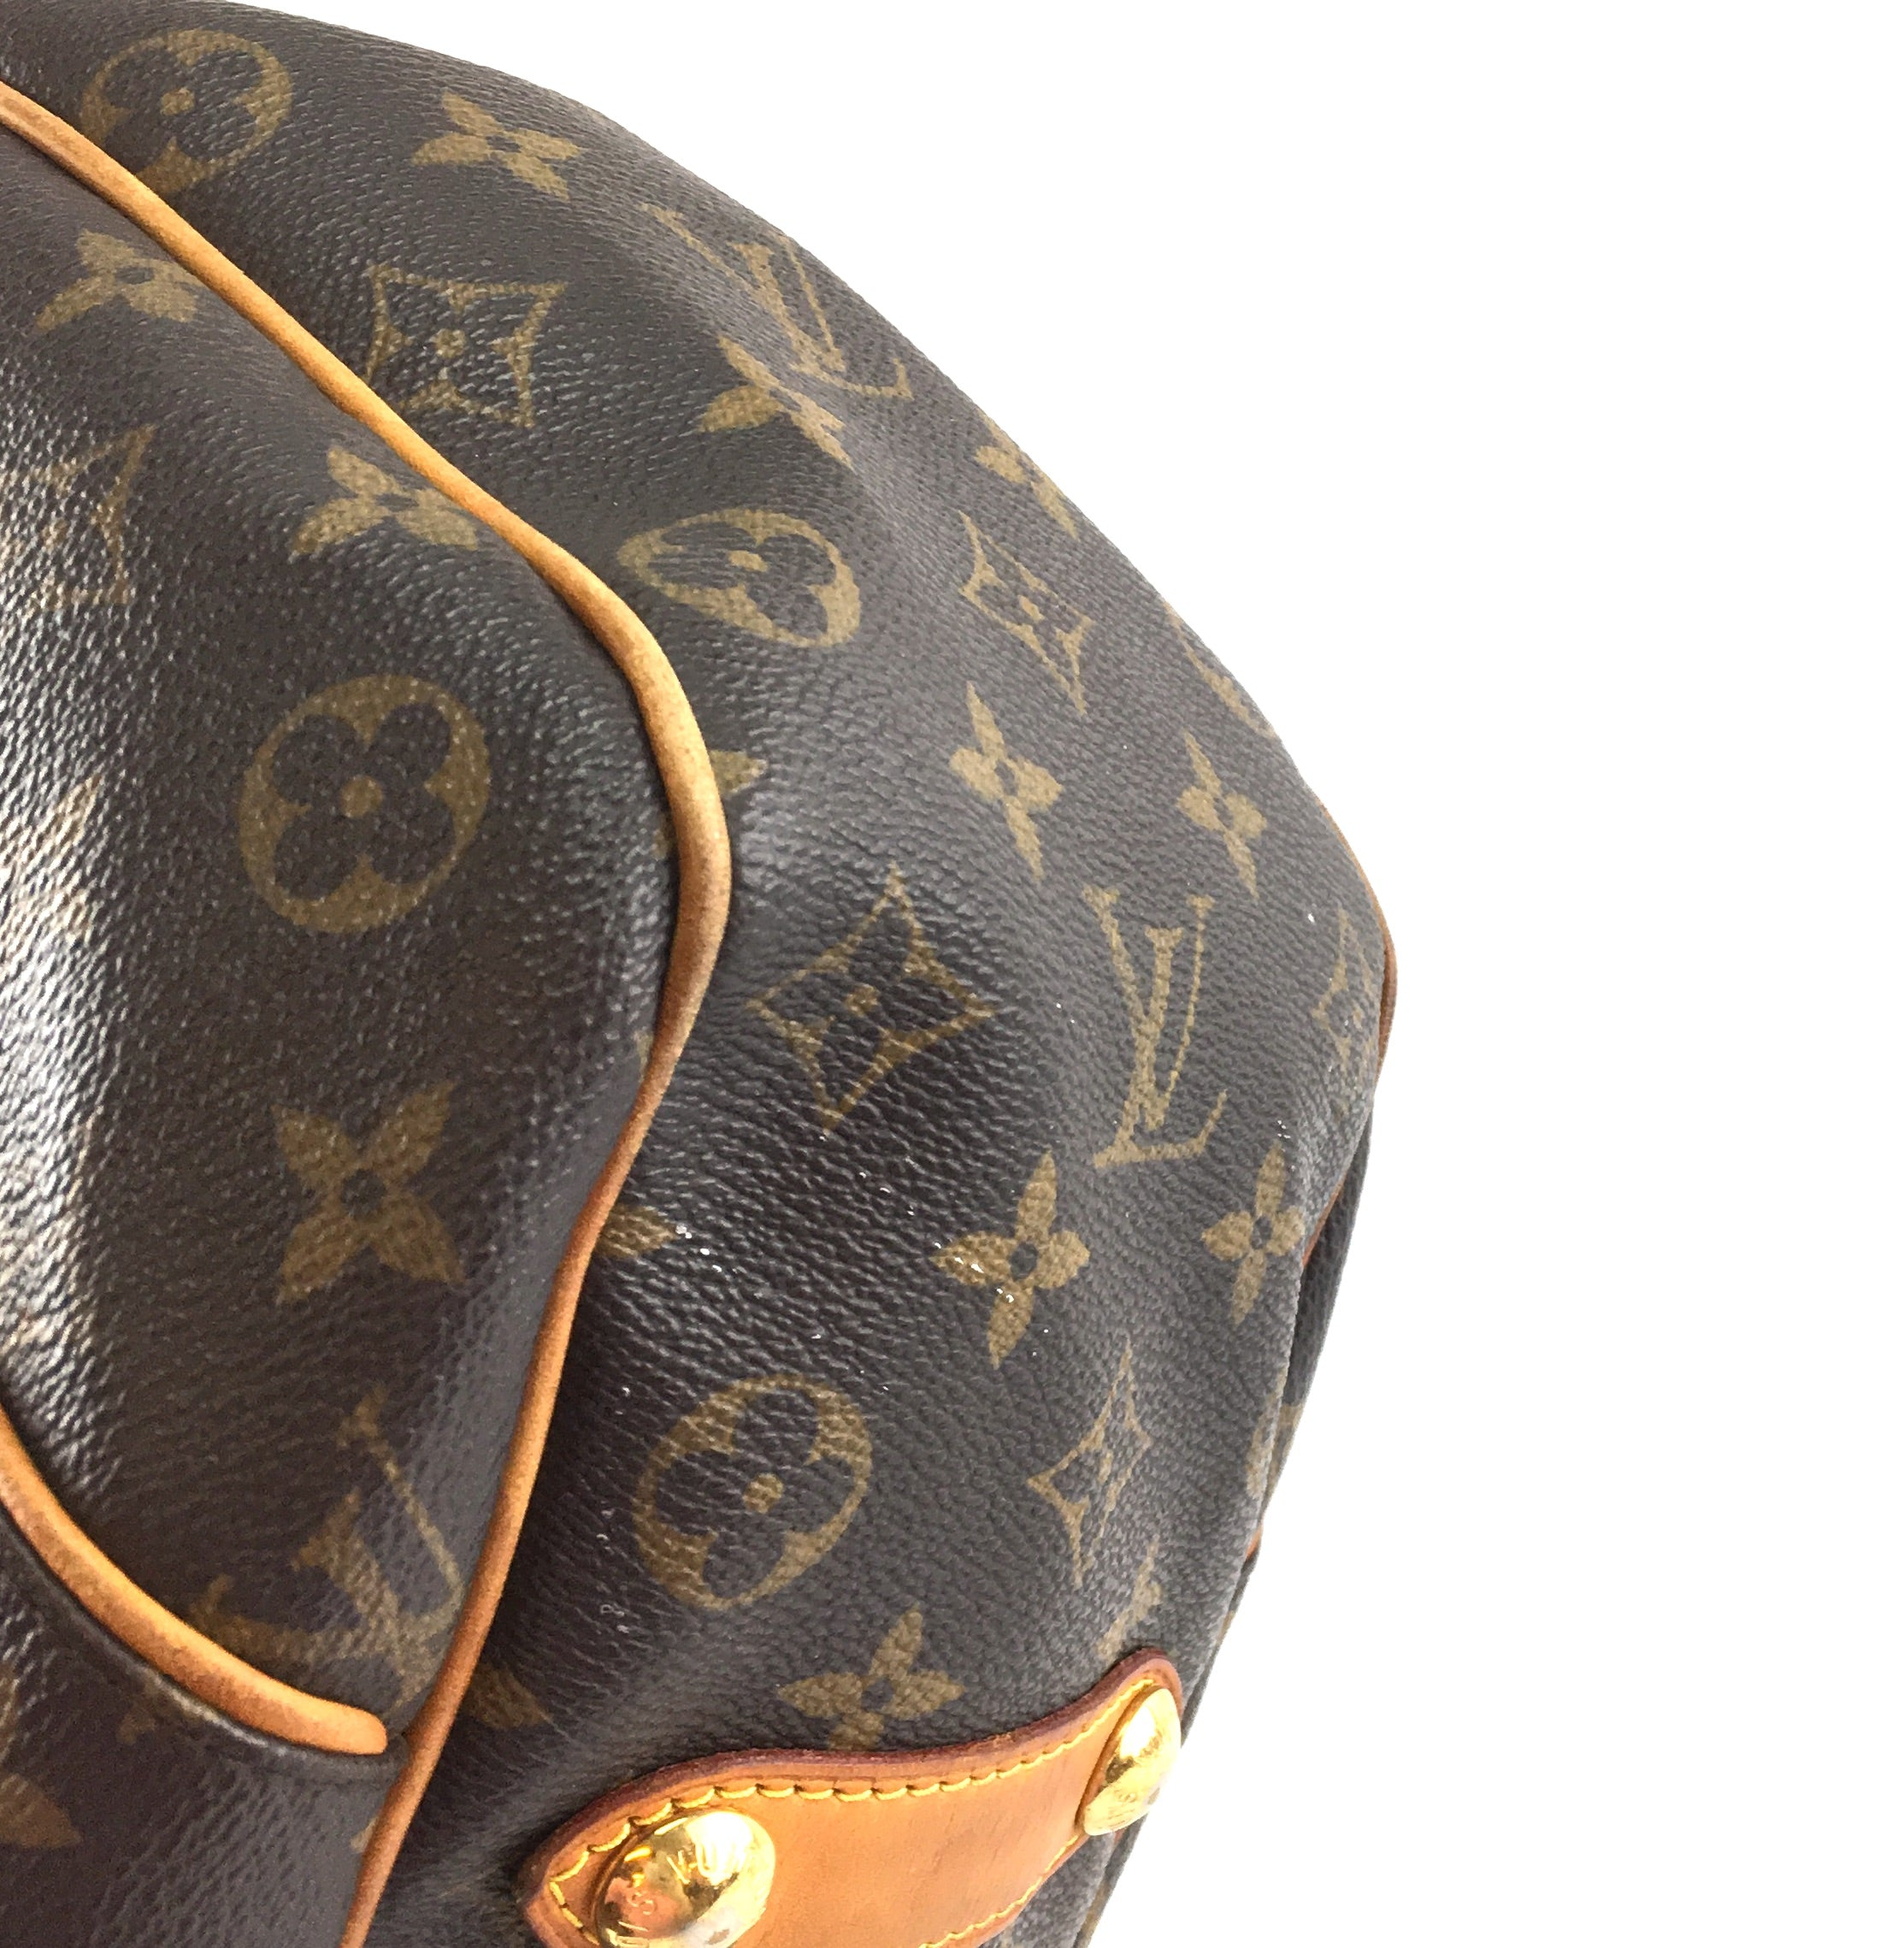 Louis Vuitton Galliera PM Monogram Canvas